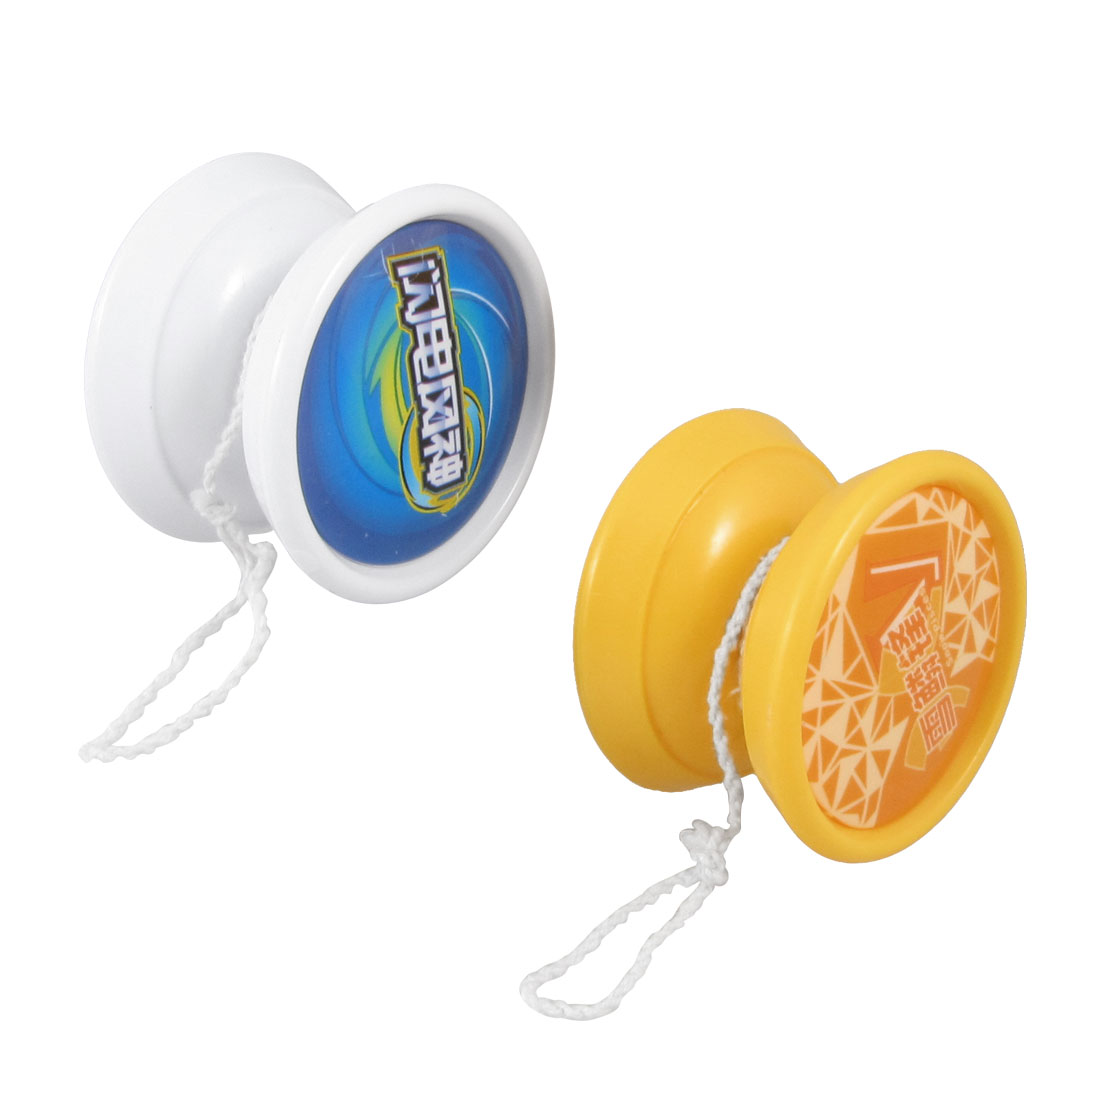 "2 Pcs 2.3"" Diameter White Orange Plastic Yo Yo Yo-yo Toy for Children"